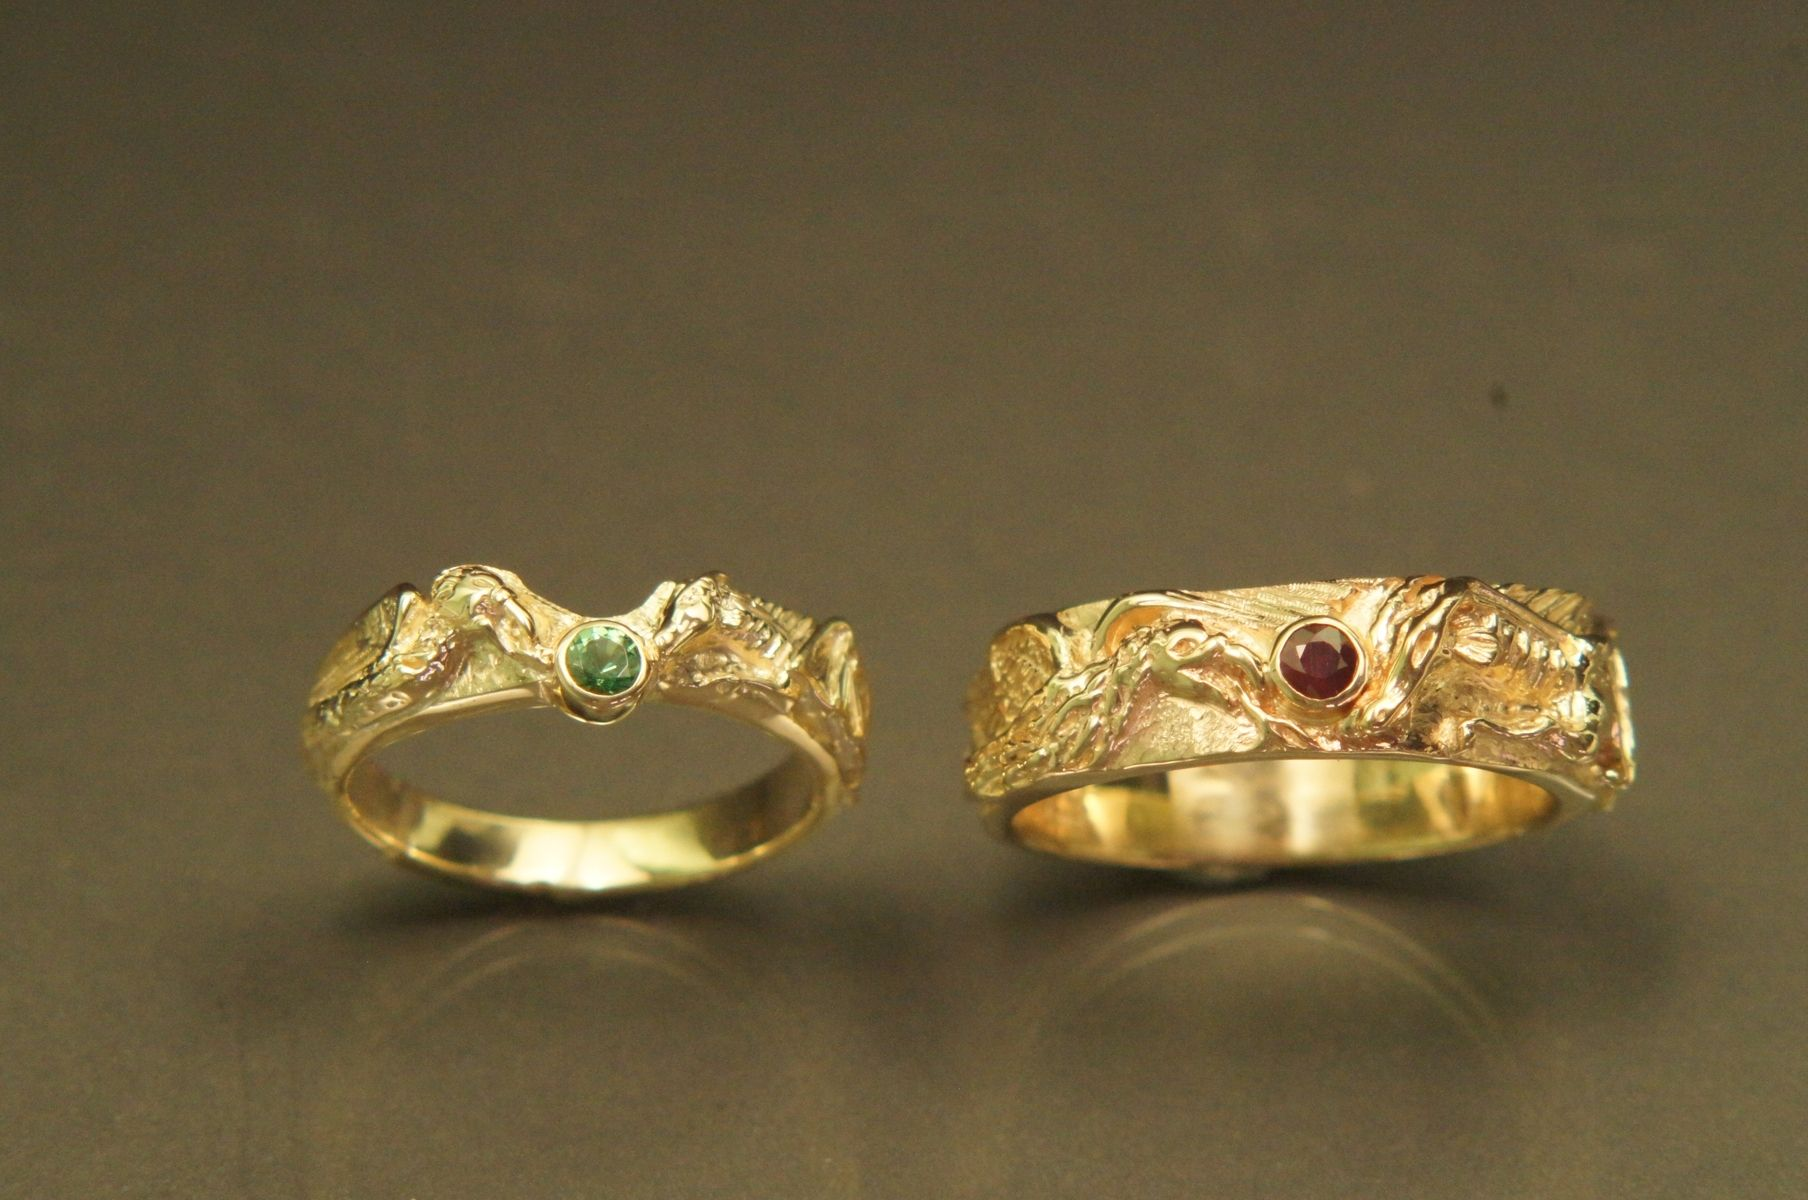 Hand Crafted Dragon & Phoenix Carved Rings by Frank Goss Goldsmith